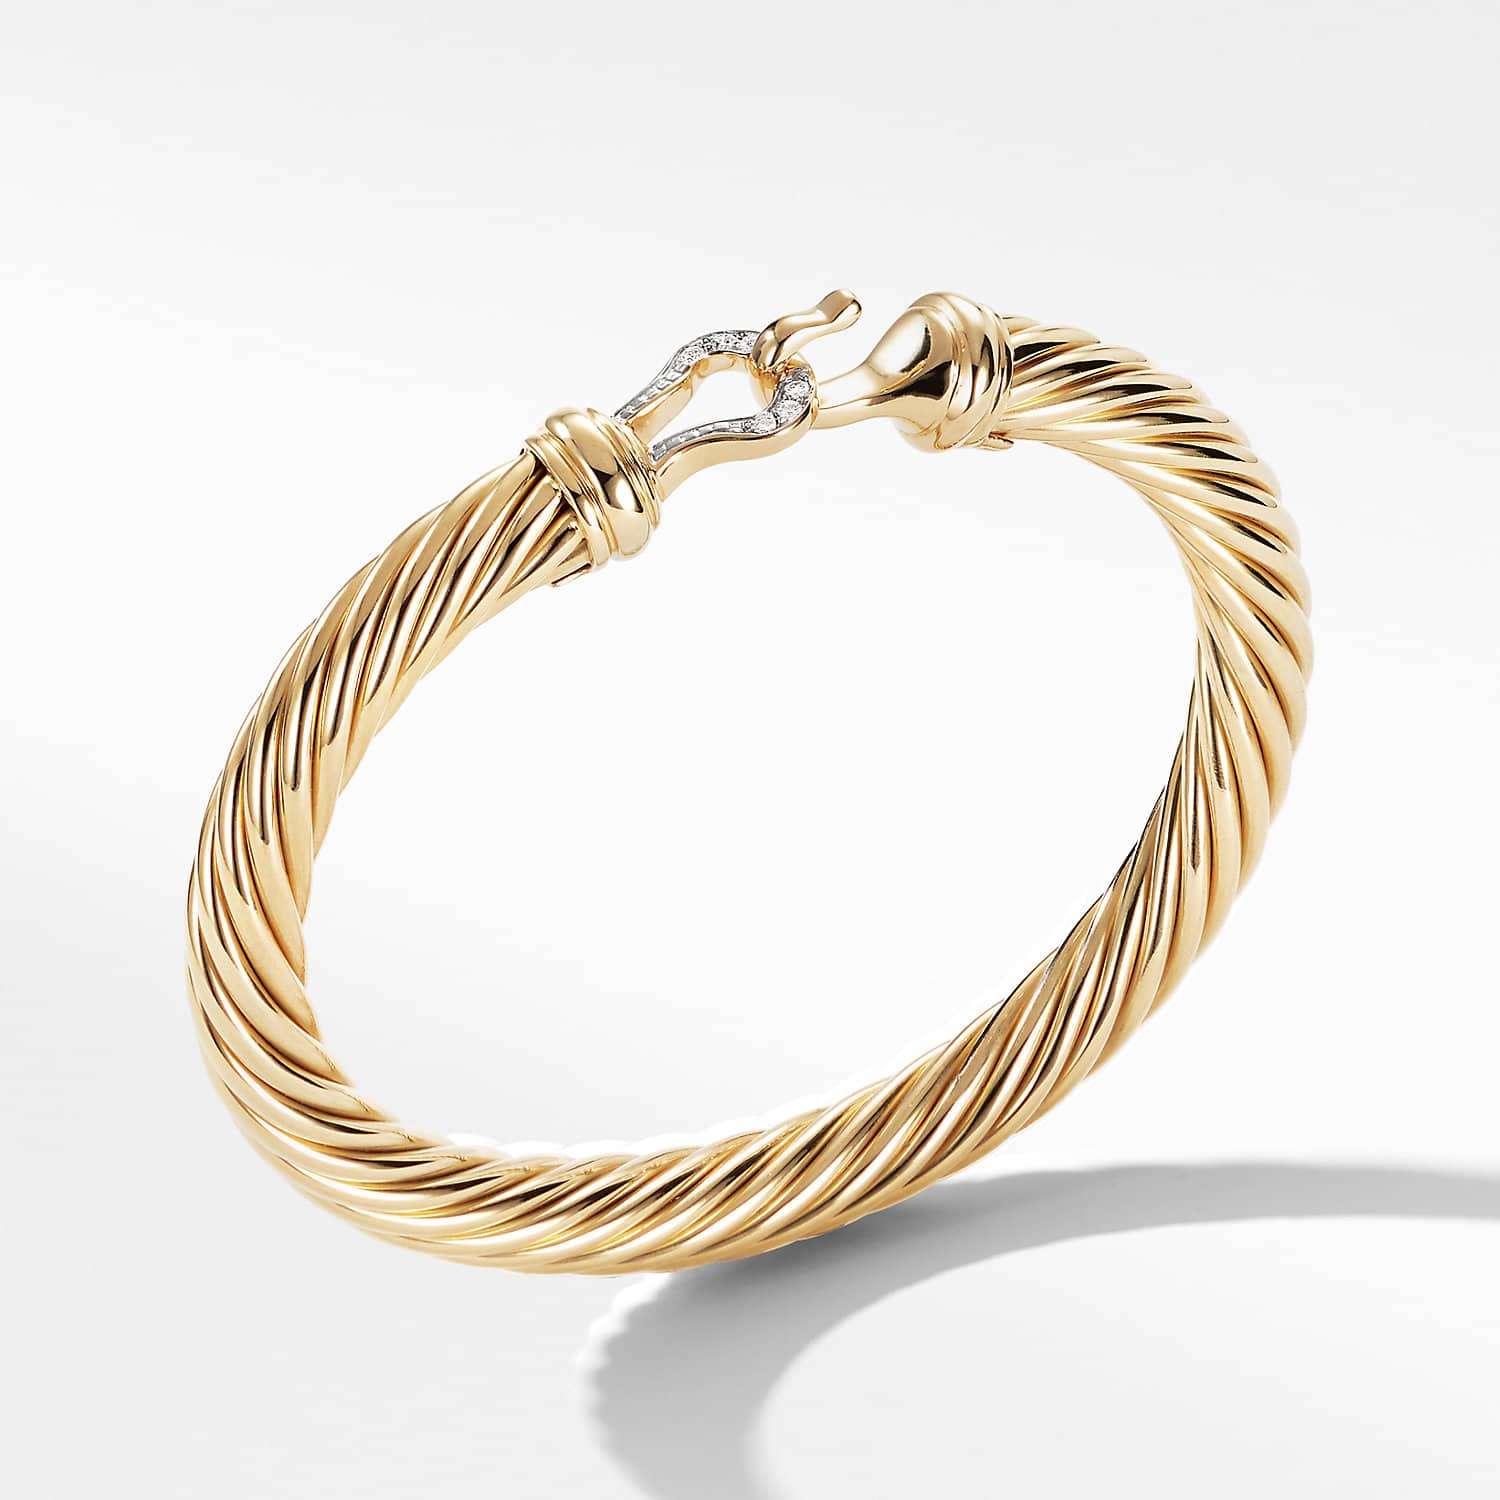 Cable Clic Buckle Bracelet With Diamonds And 18k Gold 7mm